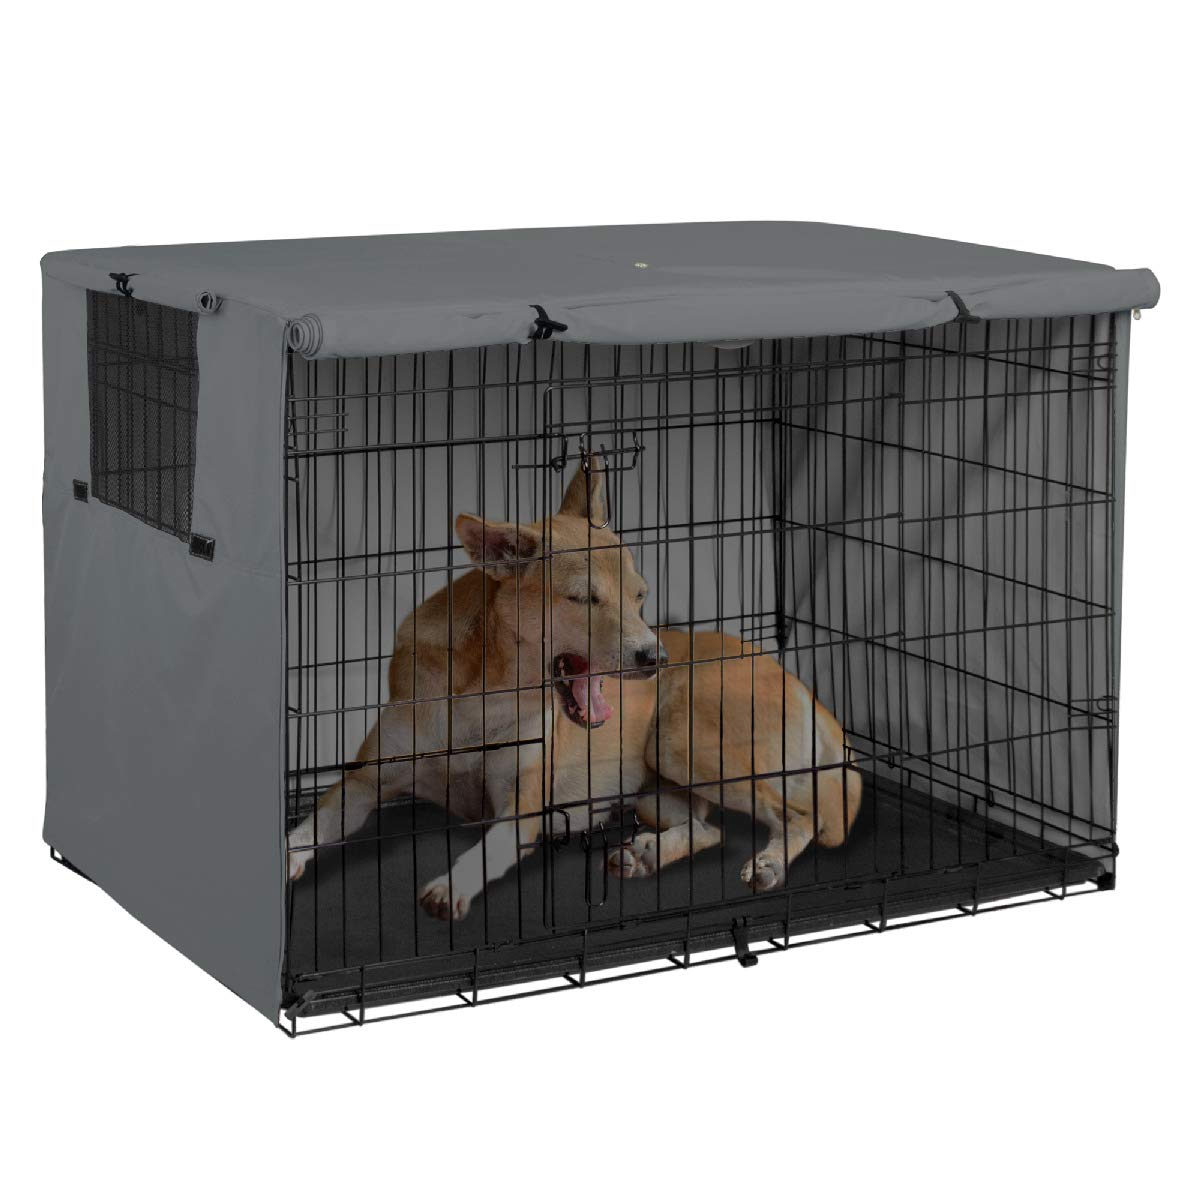 Explore Land Dog Crate Cover Durable - Polyester Pet Kennel Cover Universal Fit for 24-48 inches Wire Dog Crate